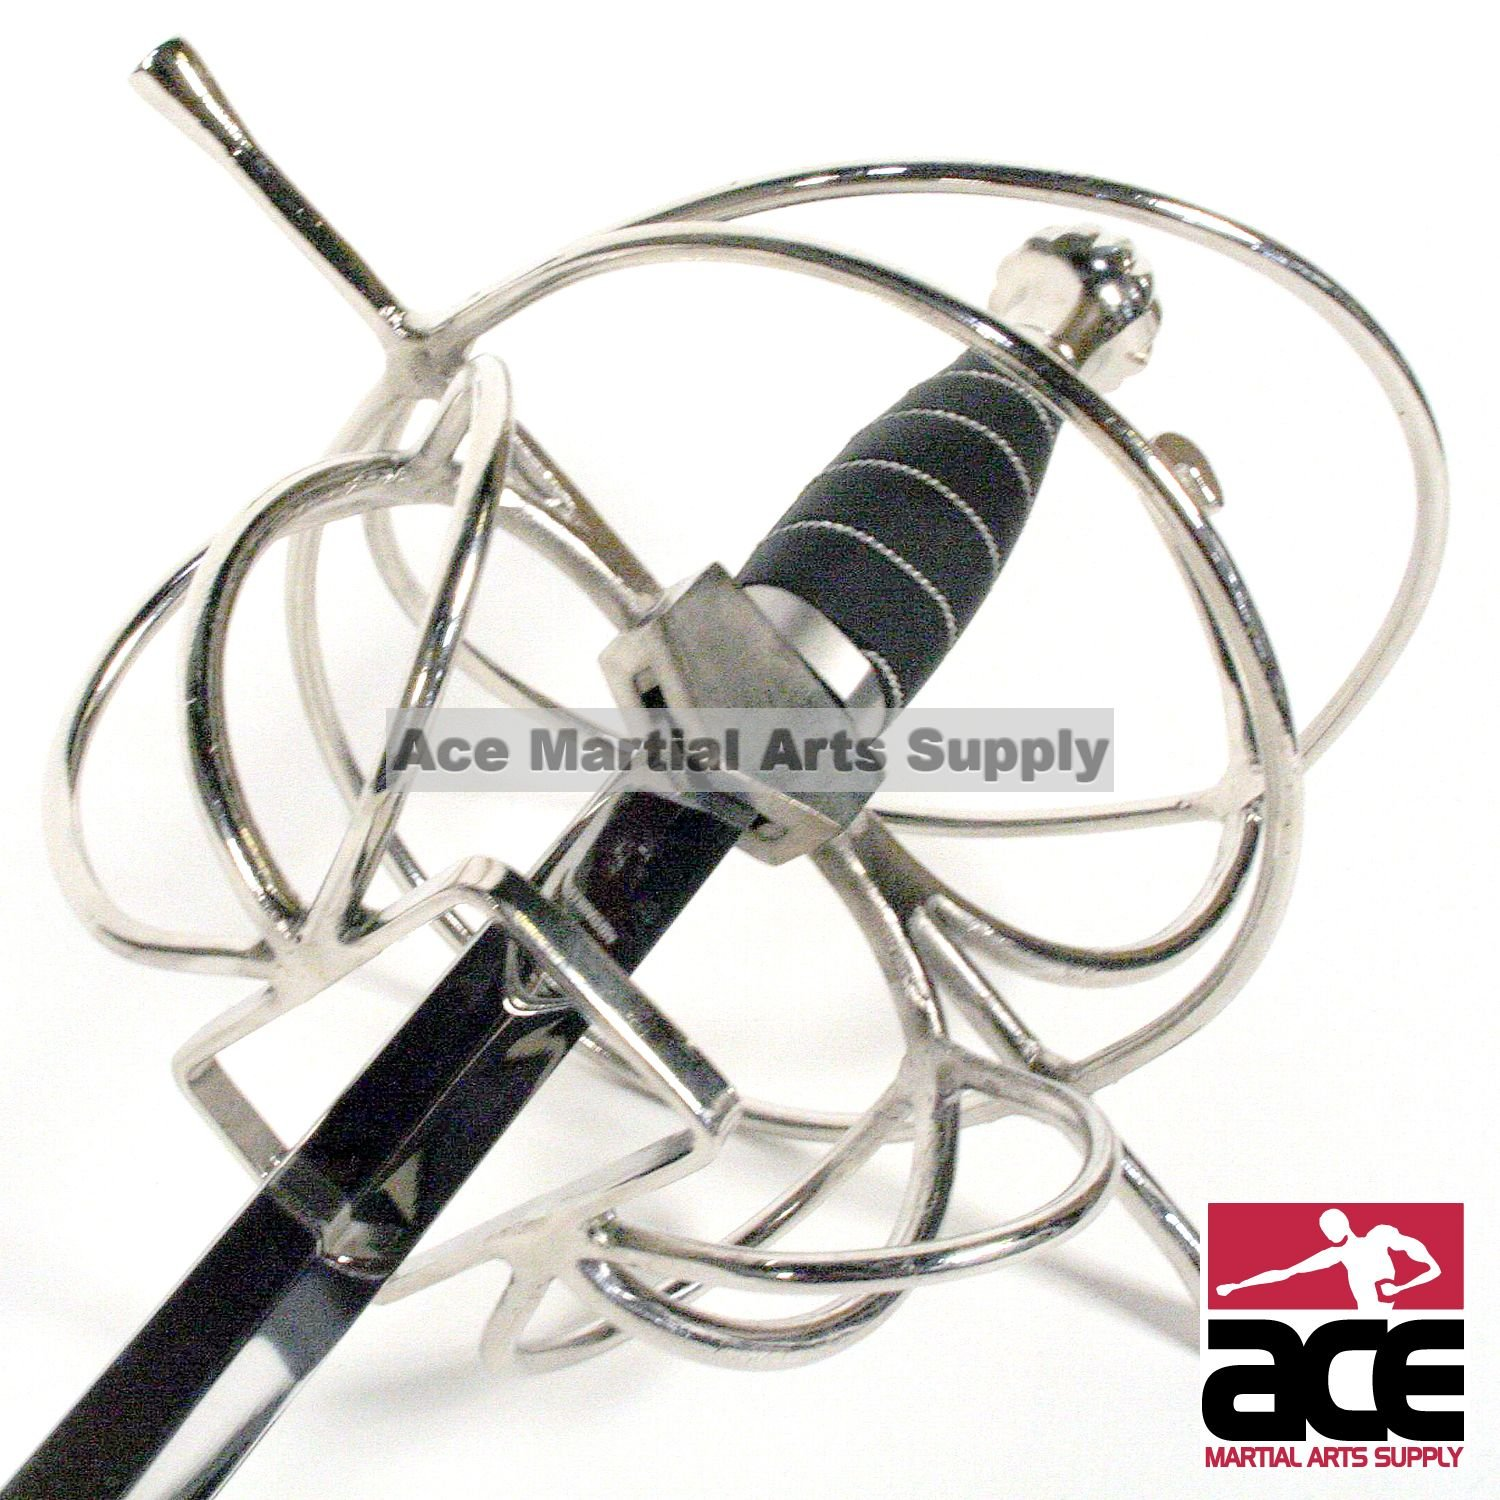 Musketeer rapier fencing sword great for cosplay